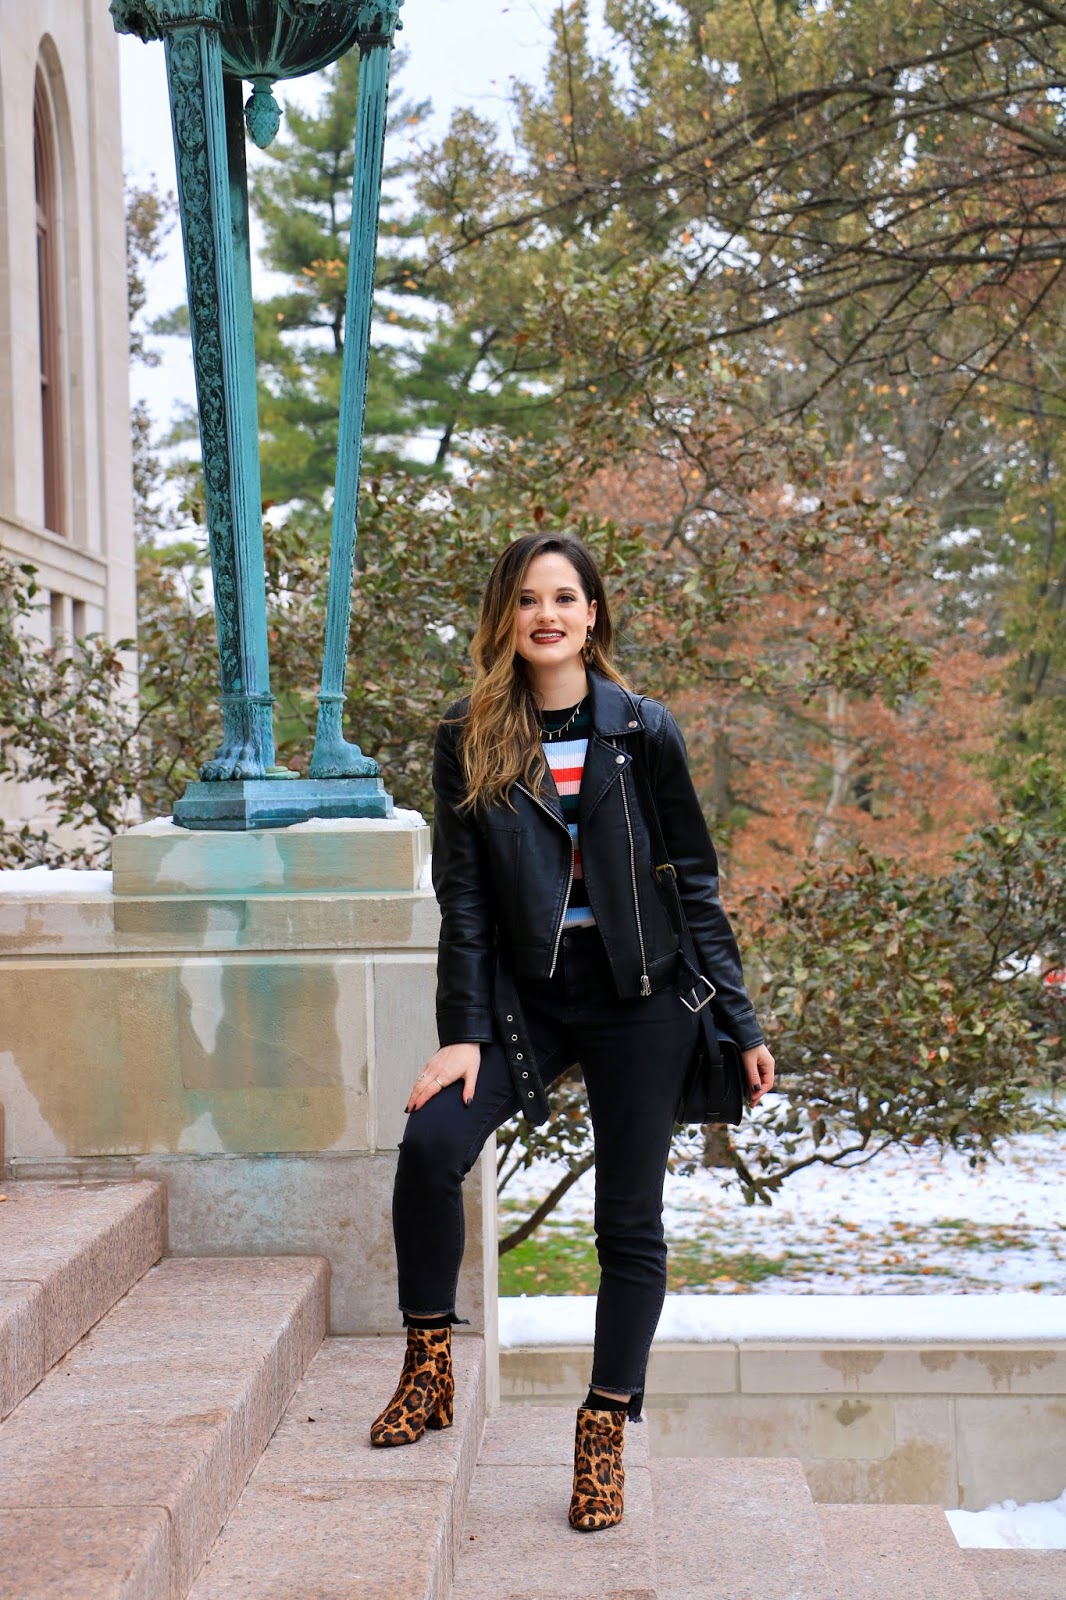 Nyc fashion blogger Kathleen Harper wearing a winter outfit in 2019.